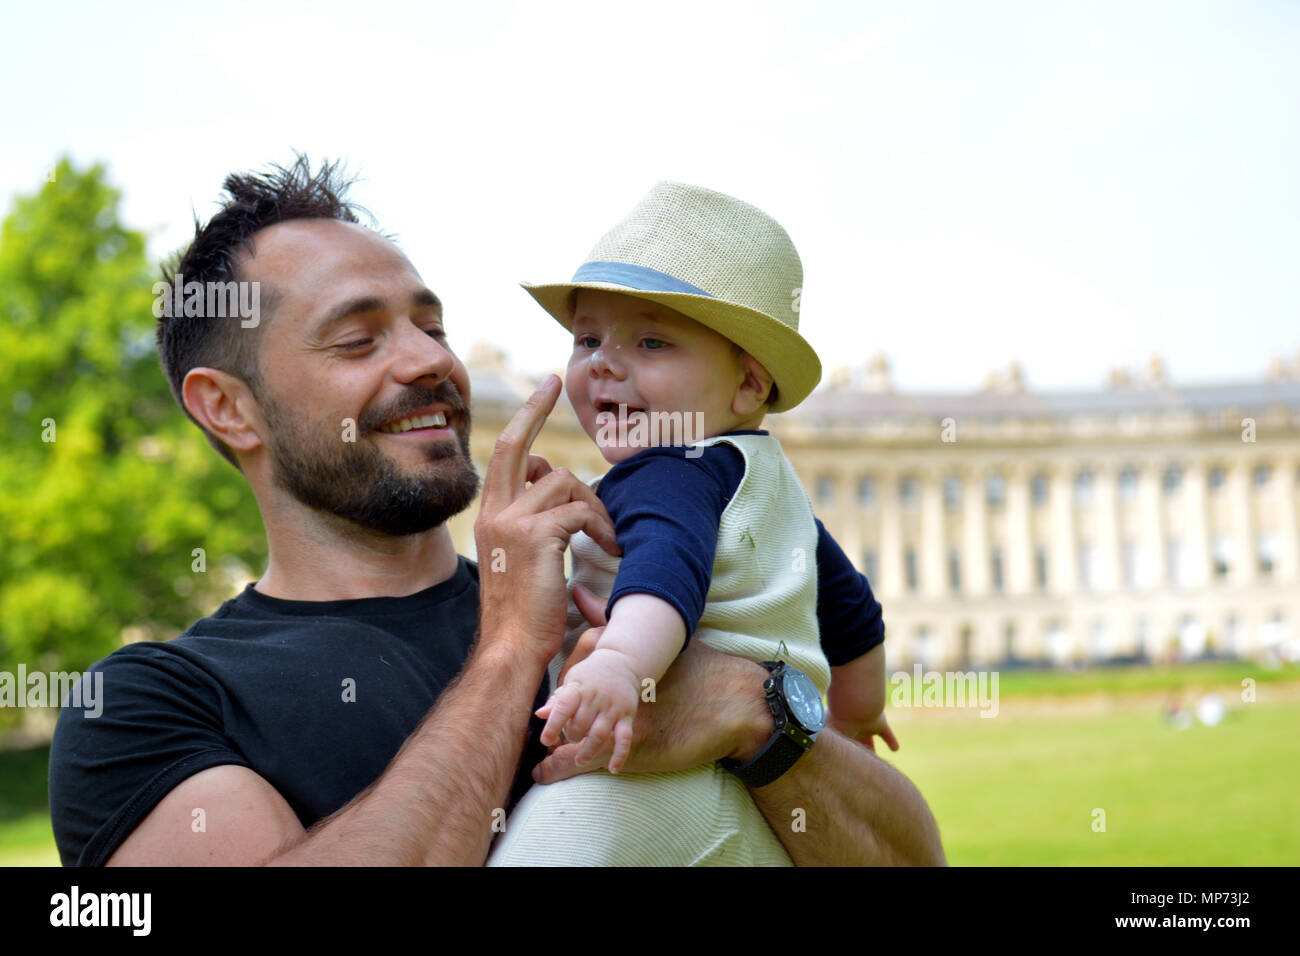 UK Weather. Oskar and his son Noah who is 8 months old enjoying a Dab of Suntan lotion popped on his nose at the grassy lawns of World Famous Bath Royal Crescent with 30 terraced houses laid out in a sweeping surround.  Robert Timoney/Alamy/Live/News - Stock Image